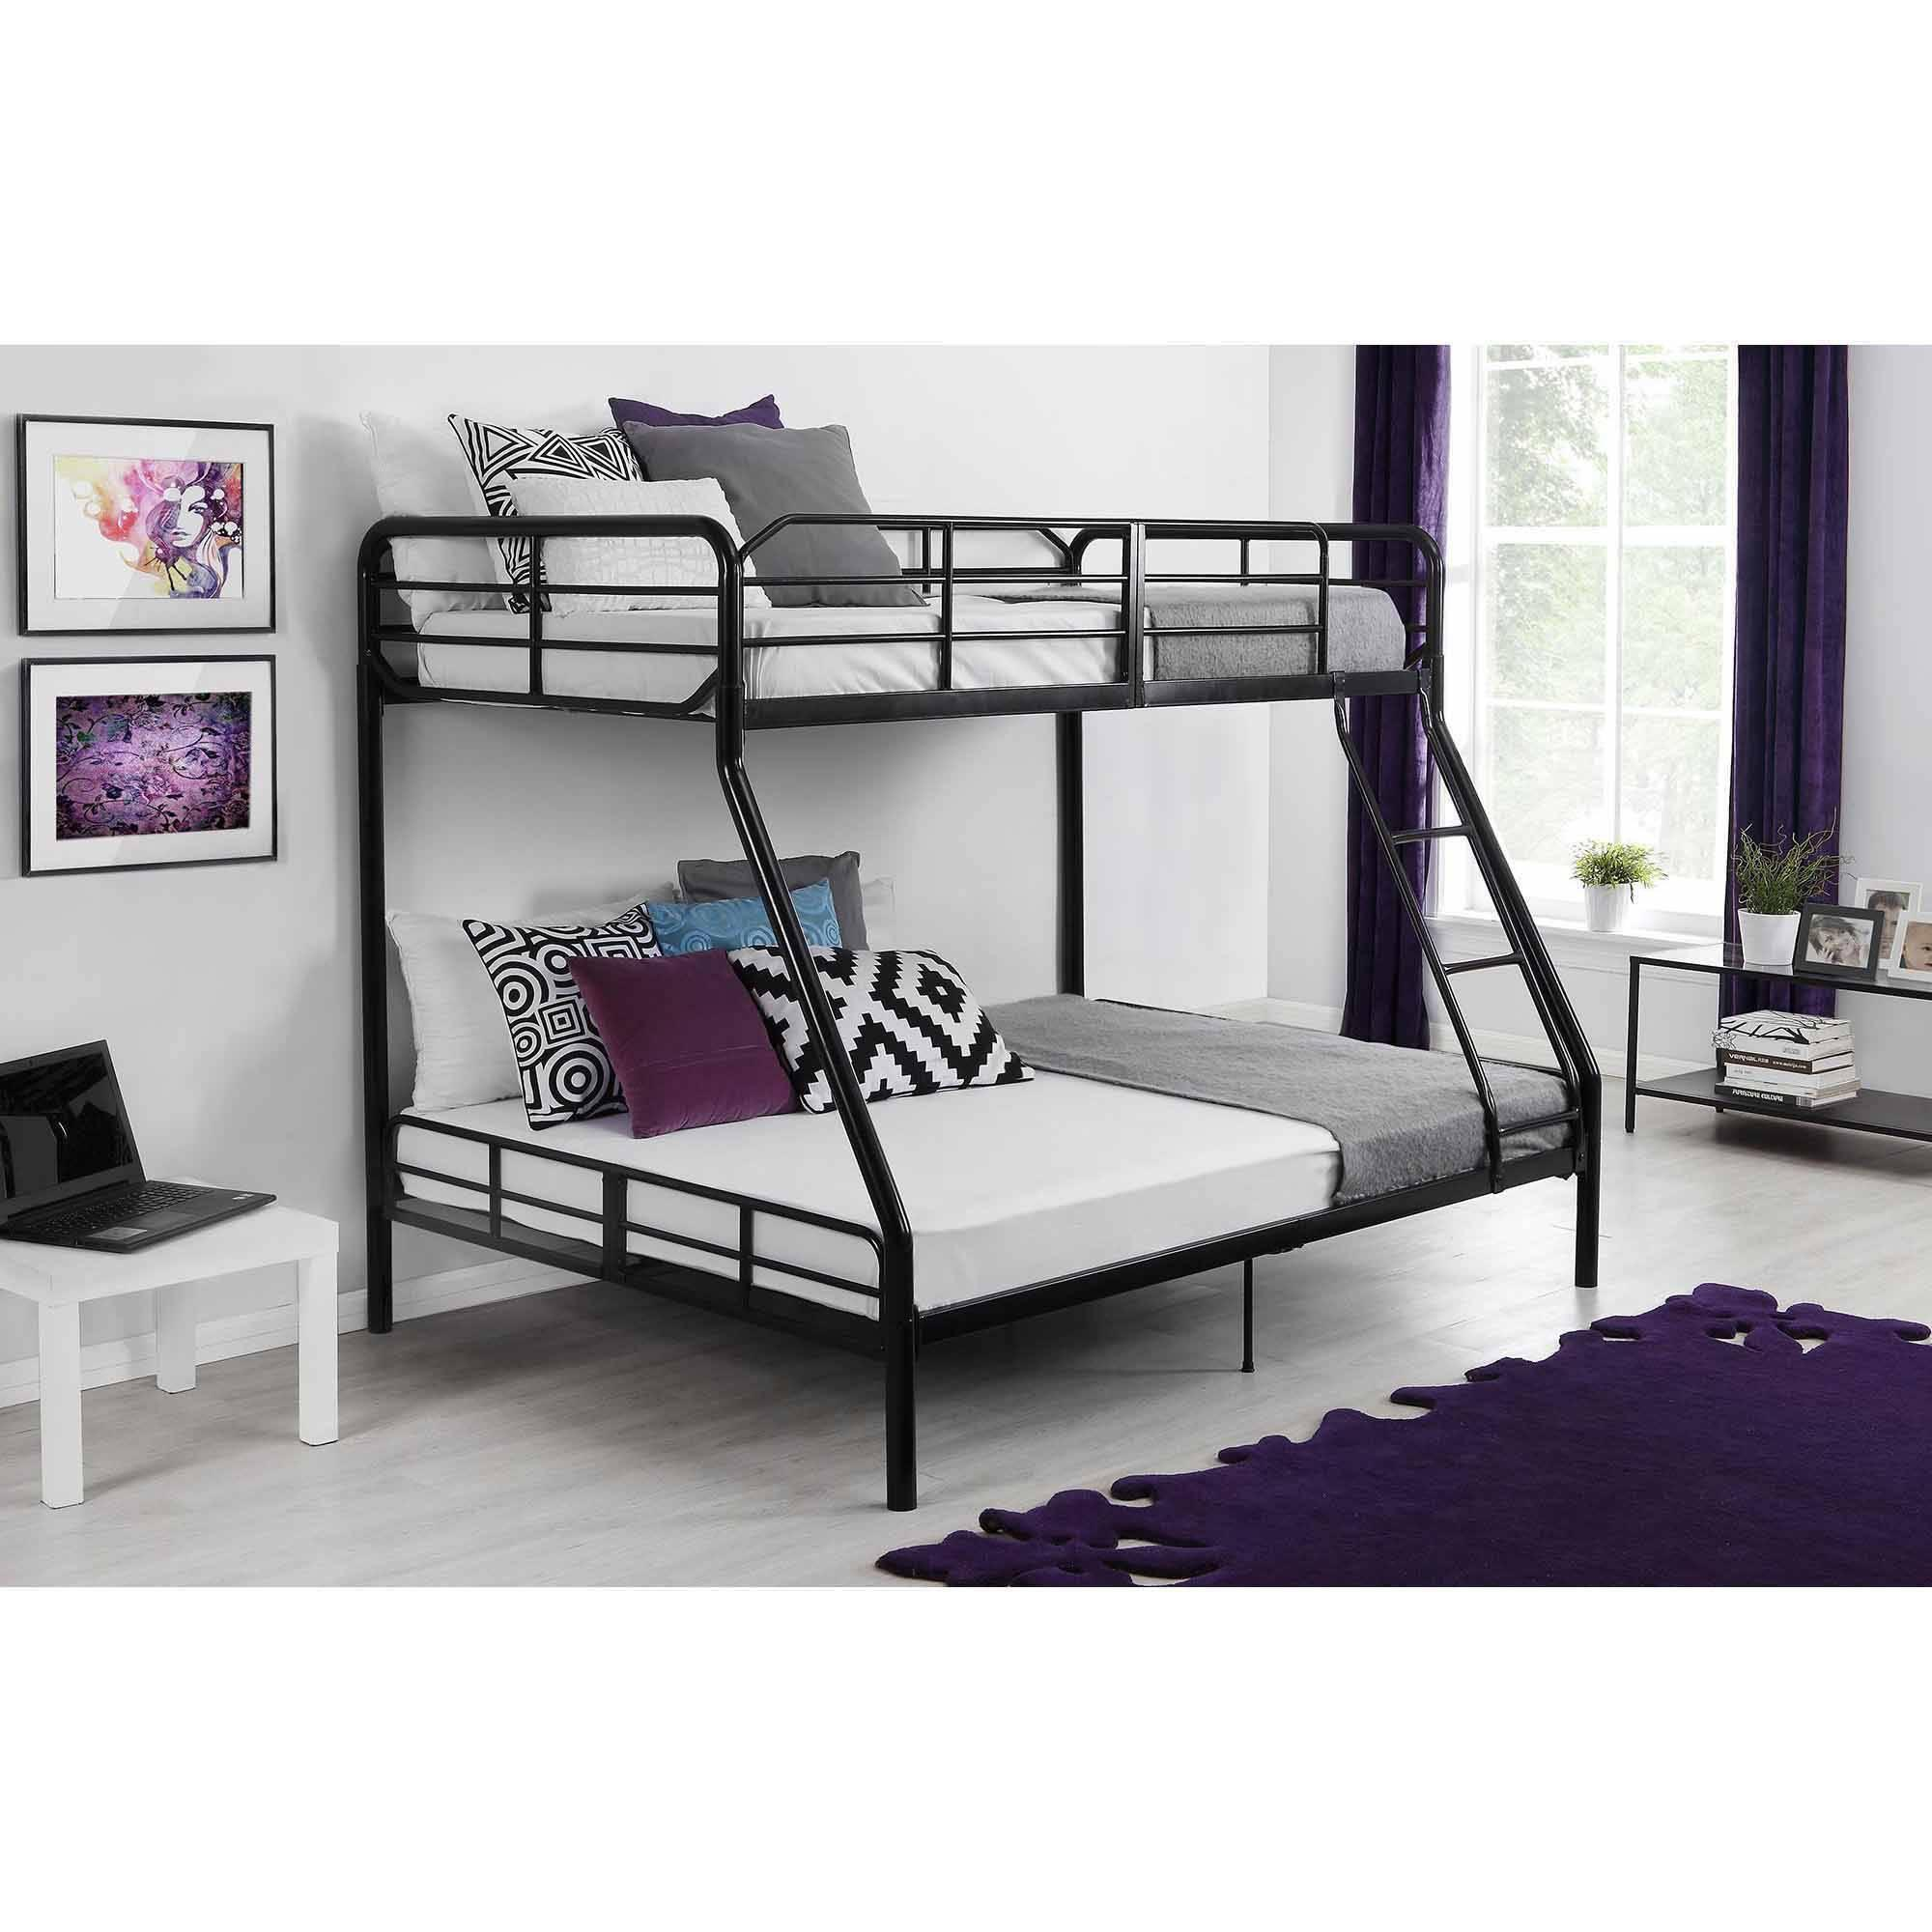 Twin over full metal bunk bed w ladder kids bedroom for Toddler bunk beds